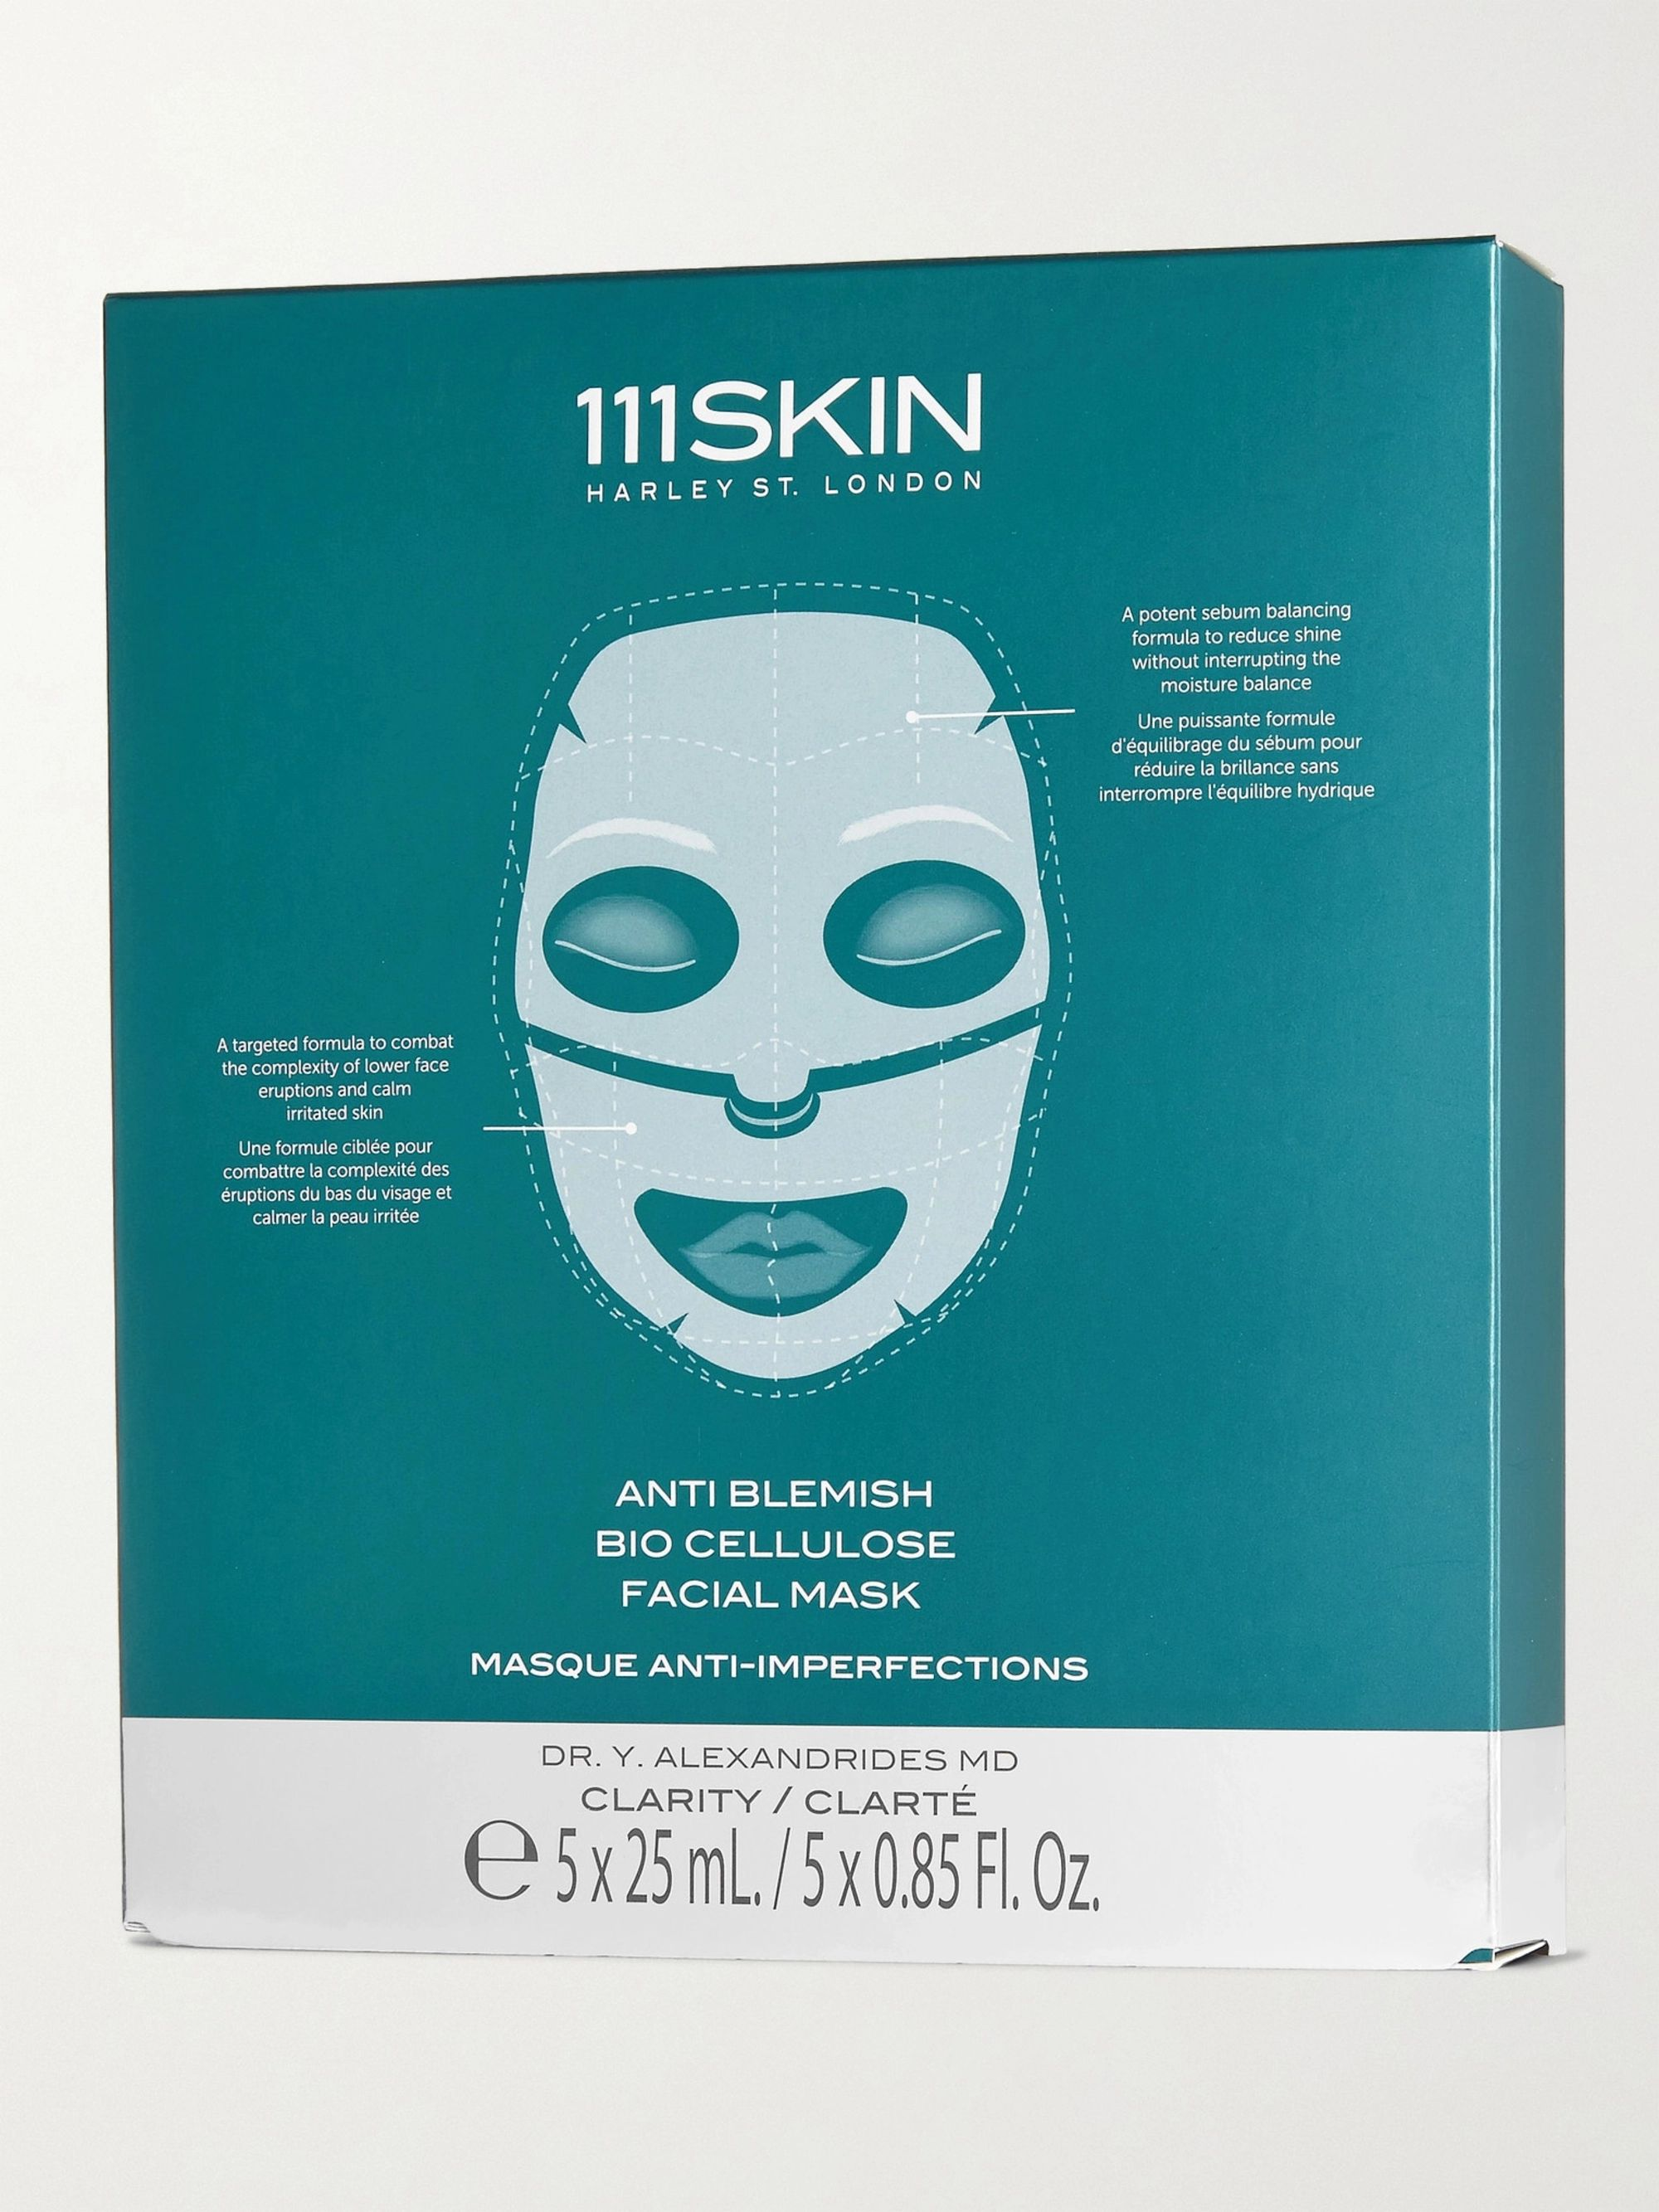 111SKIN Anti Blemish Bio Cellulose Facial Mask x 5